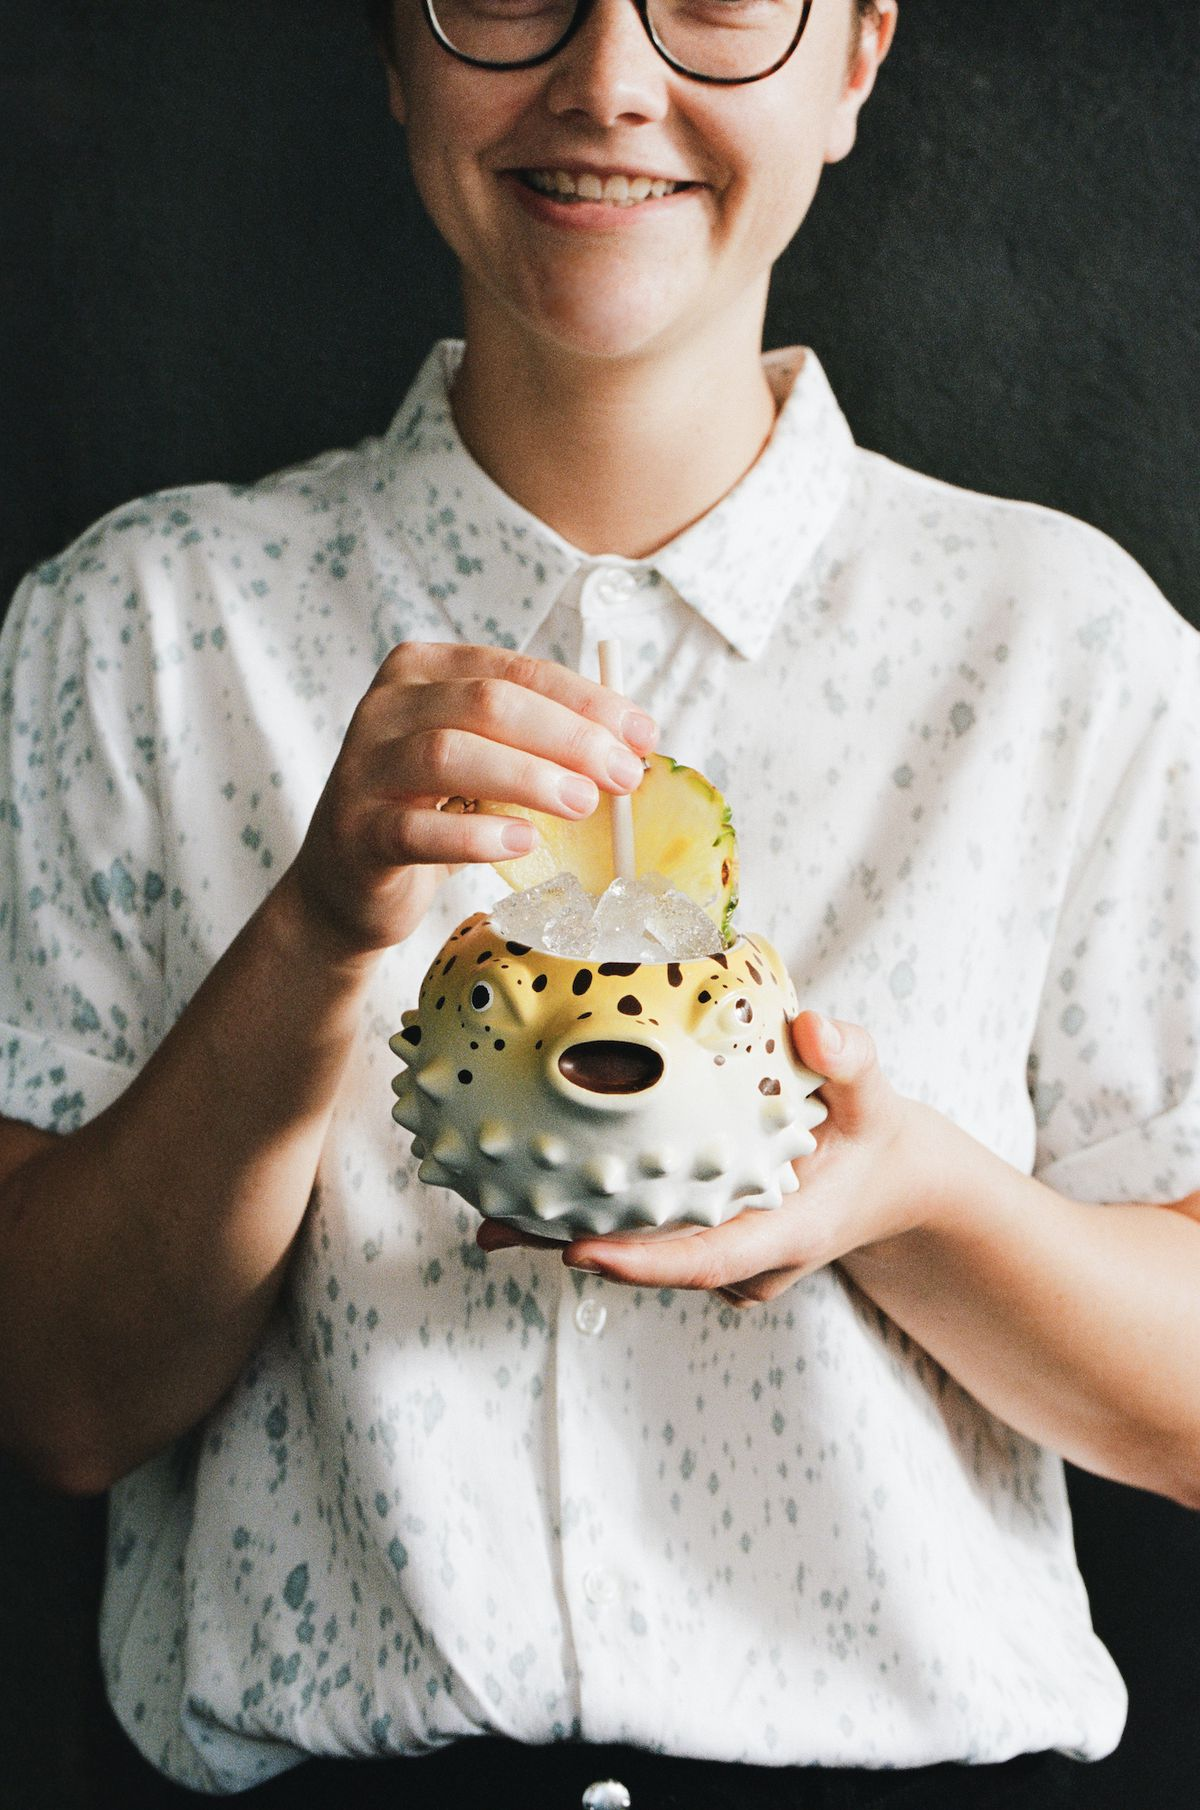 A worker in glasses holds a funky punch bowl cocktail glass that looks like a blowfish.